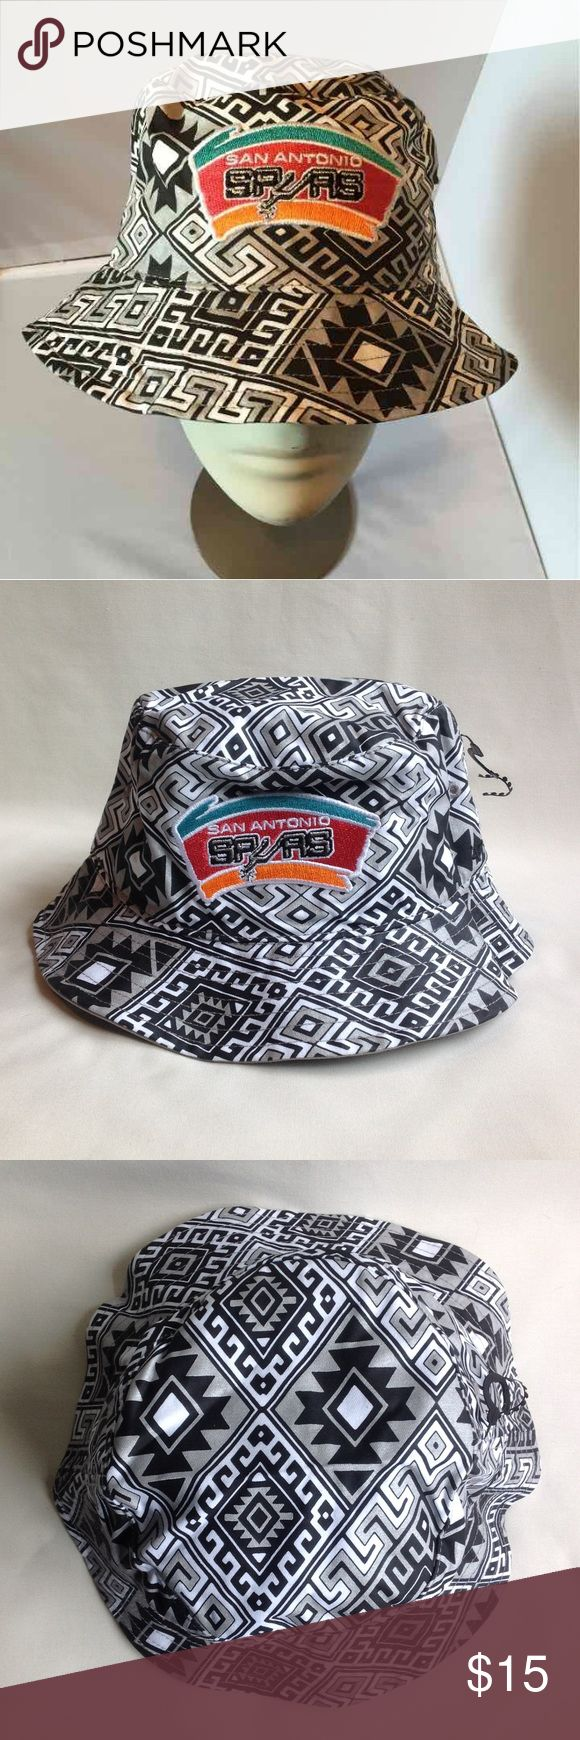 San Antonio Spurs bucket hat New w/ tag! Never worn!  NBA San Antonio Spurs bucket hat  Size L/XL 47 Brand Accessories Hats